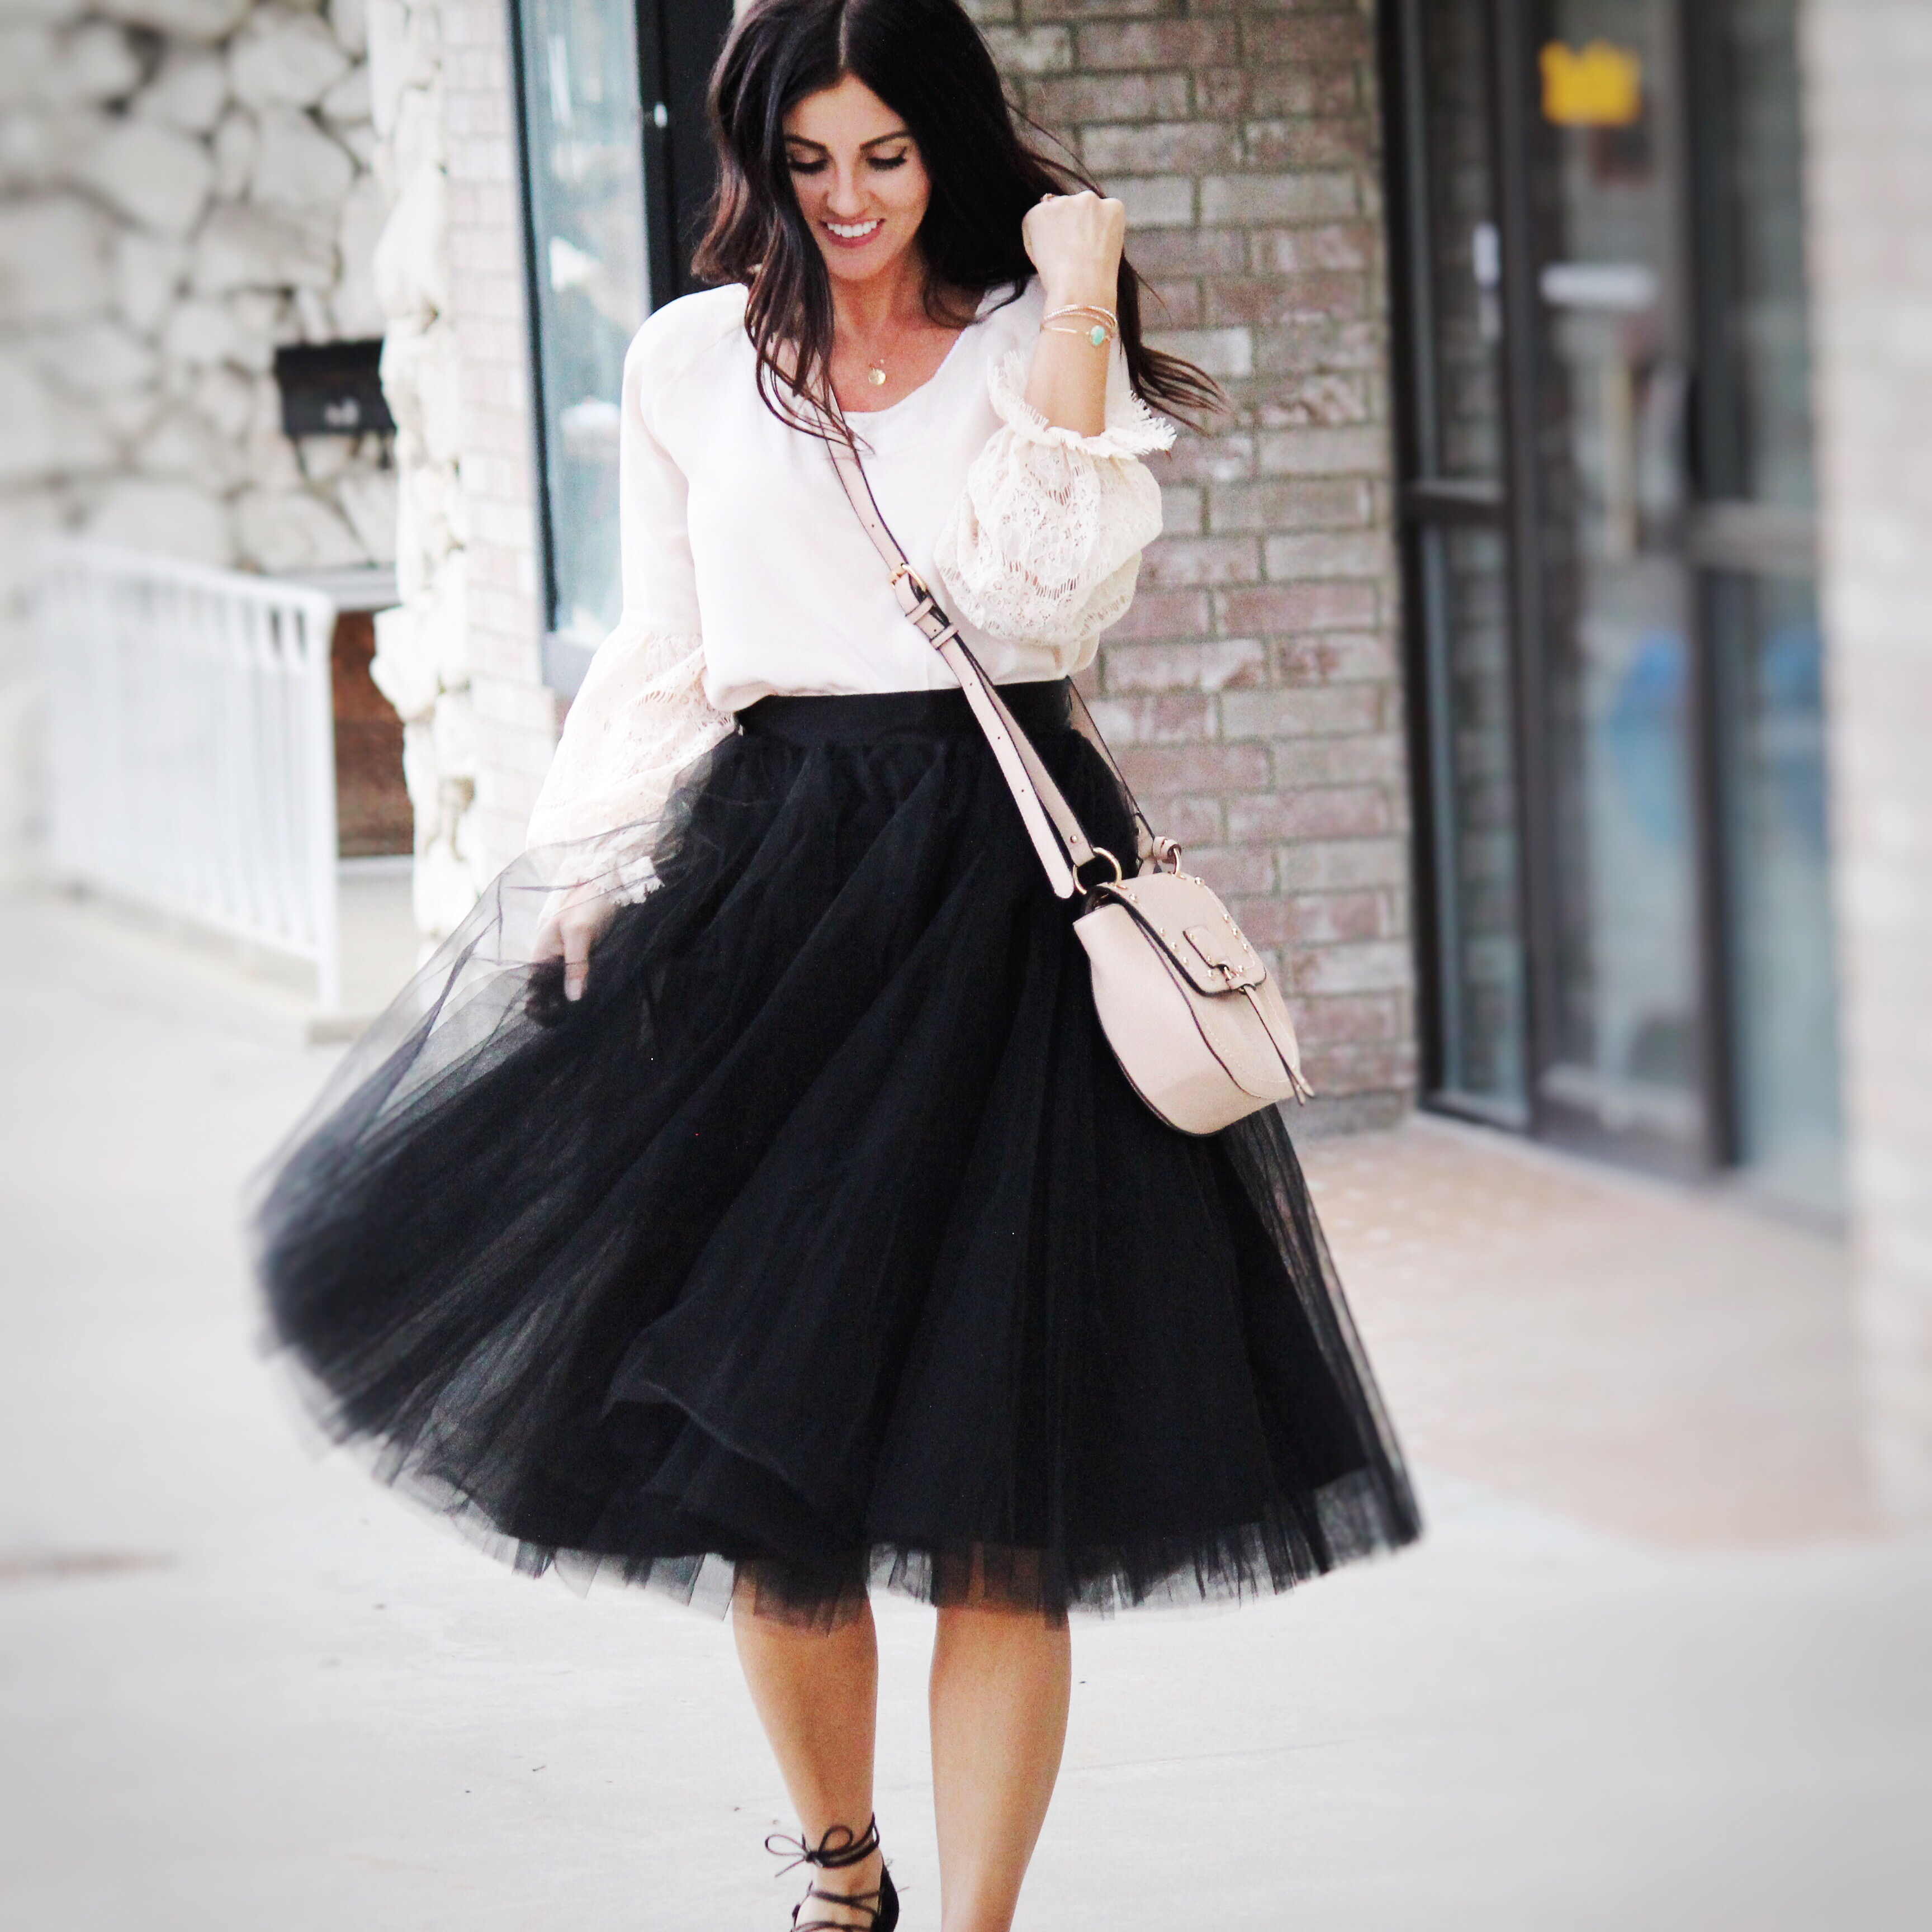 a151e32ecb space 46 boutique, tulle skirts, salted sisters, ballerina flats, lace ups,  ...